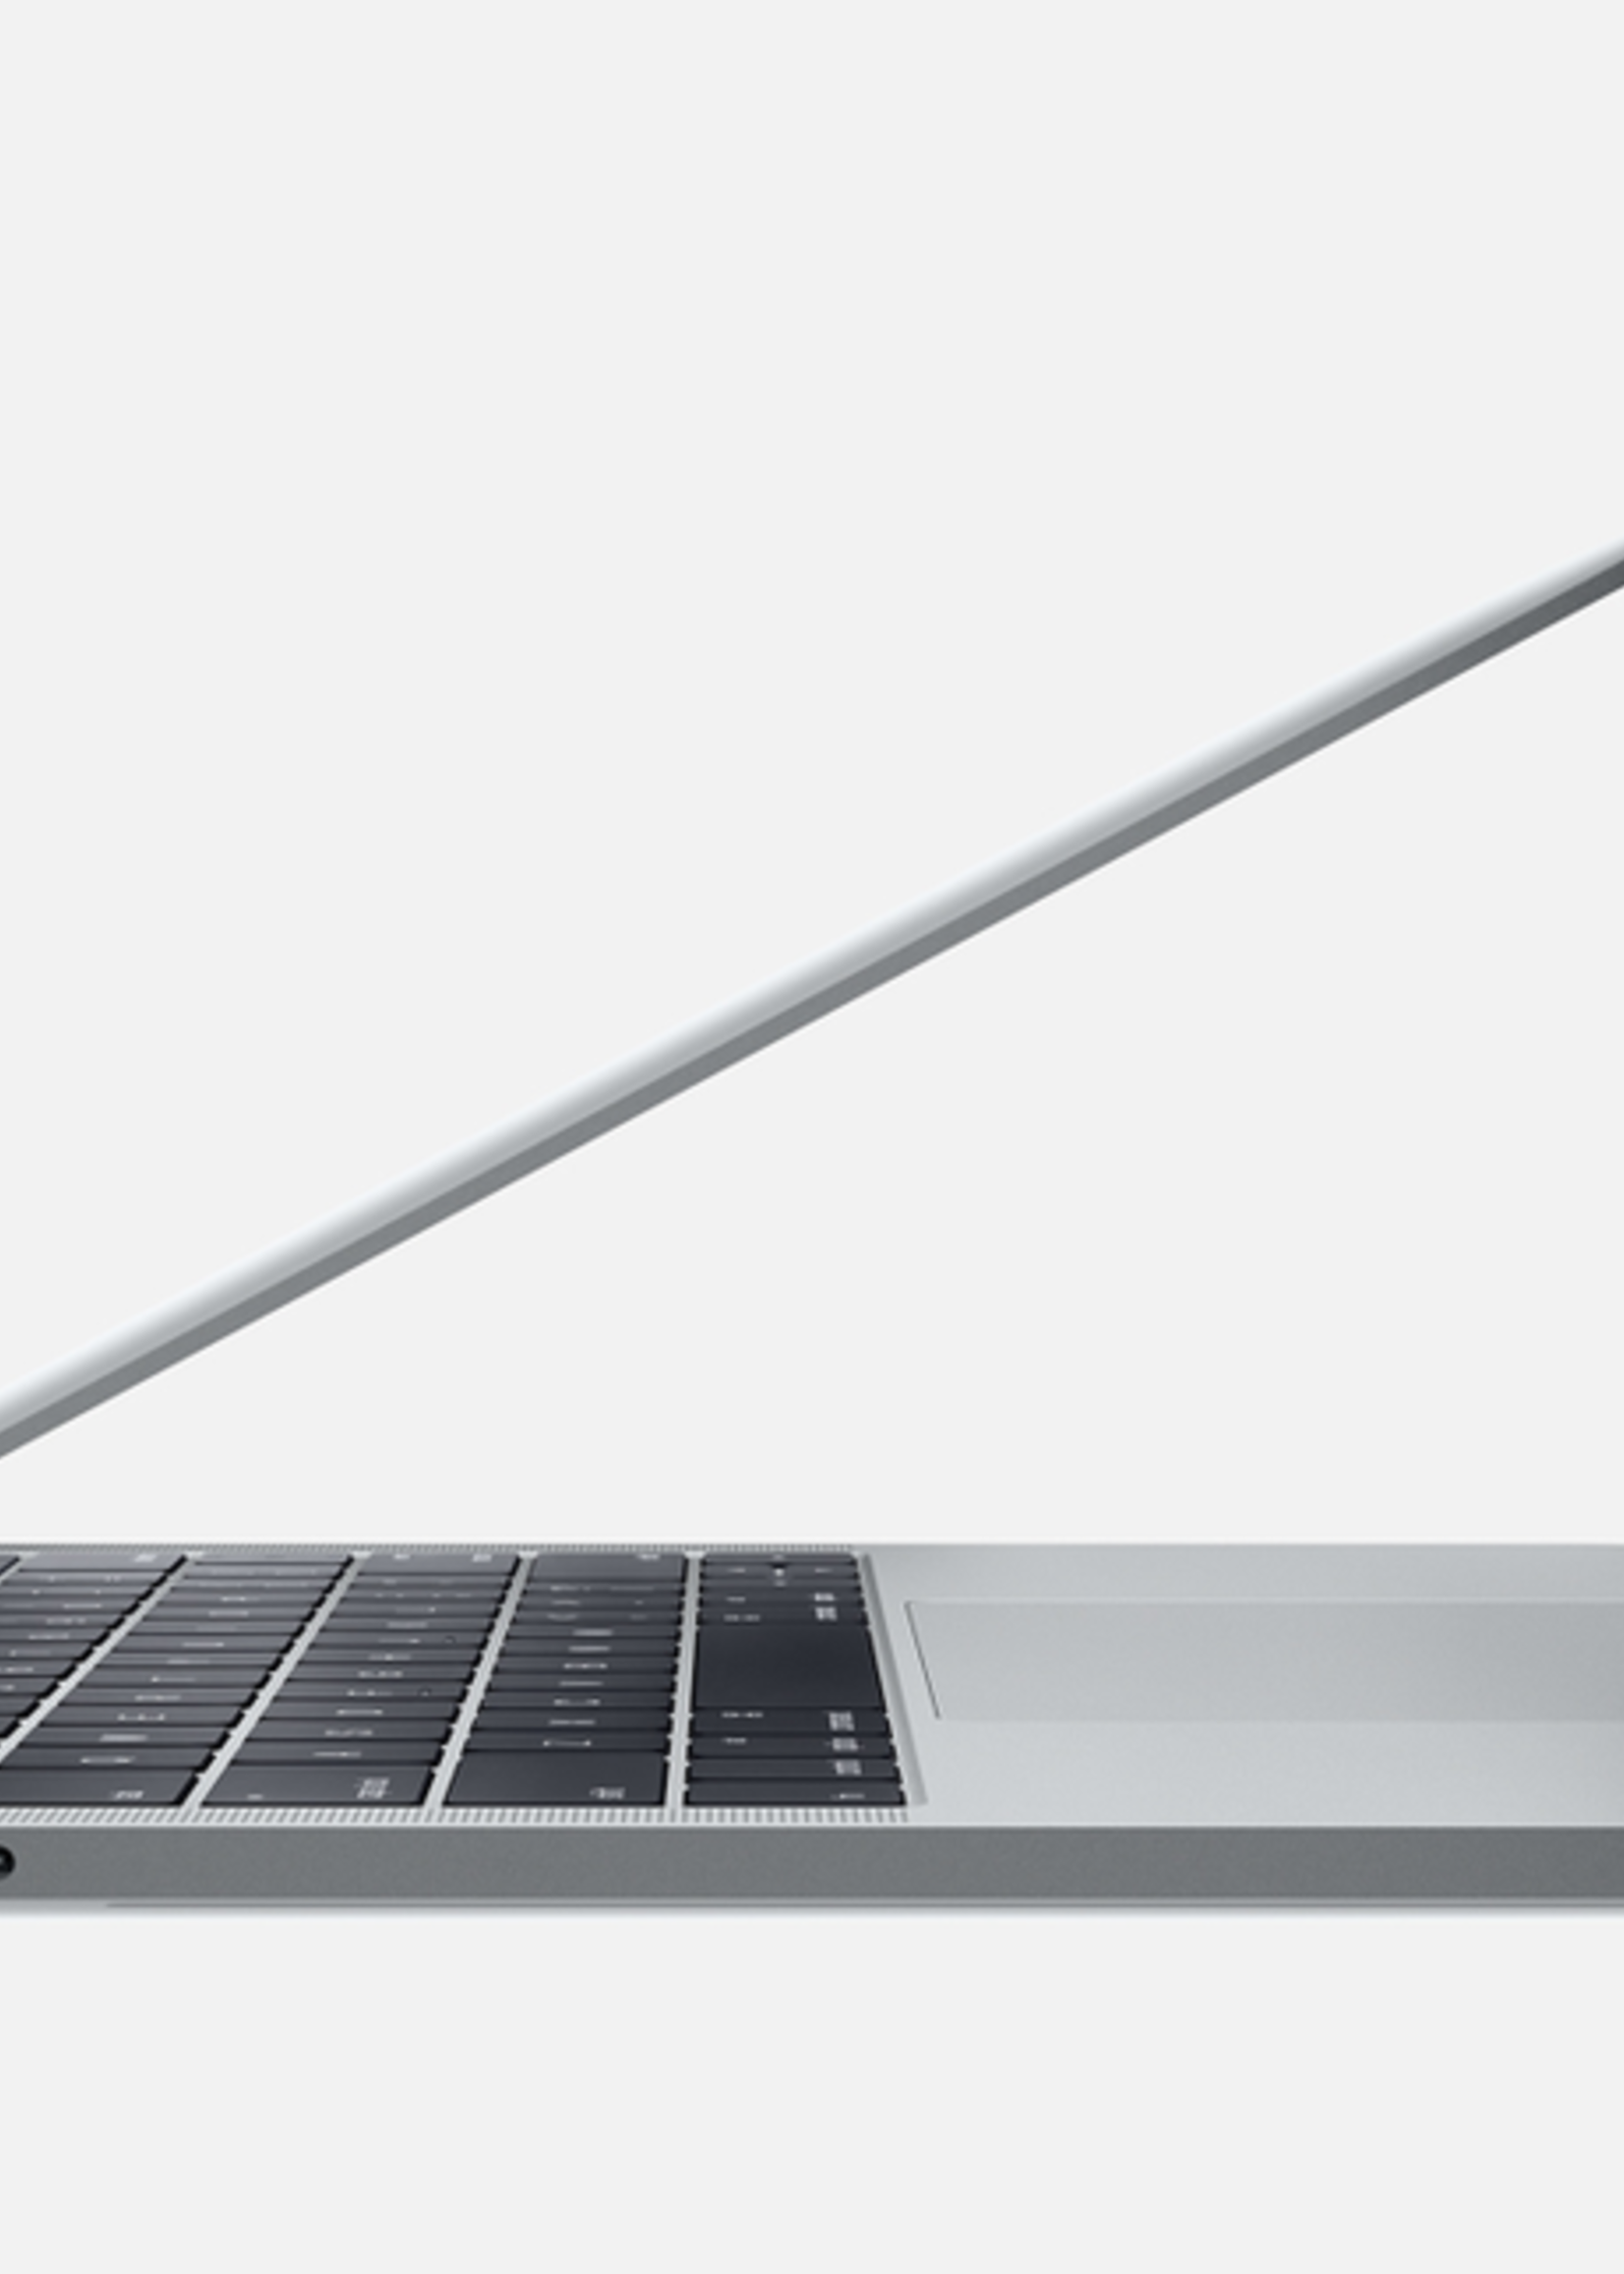 """13"""" Macbook Pro w/ touch bar - 256GB - Space Gray - 2019"""